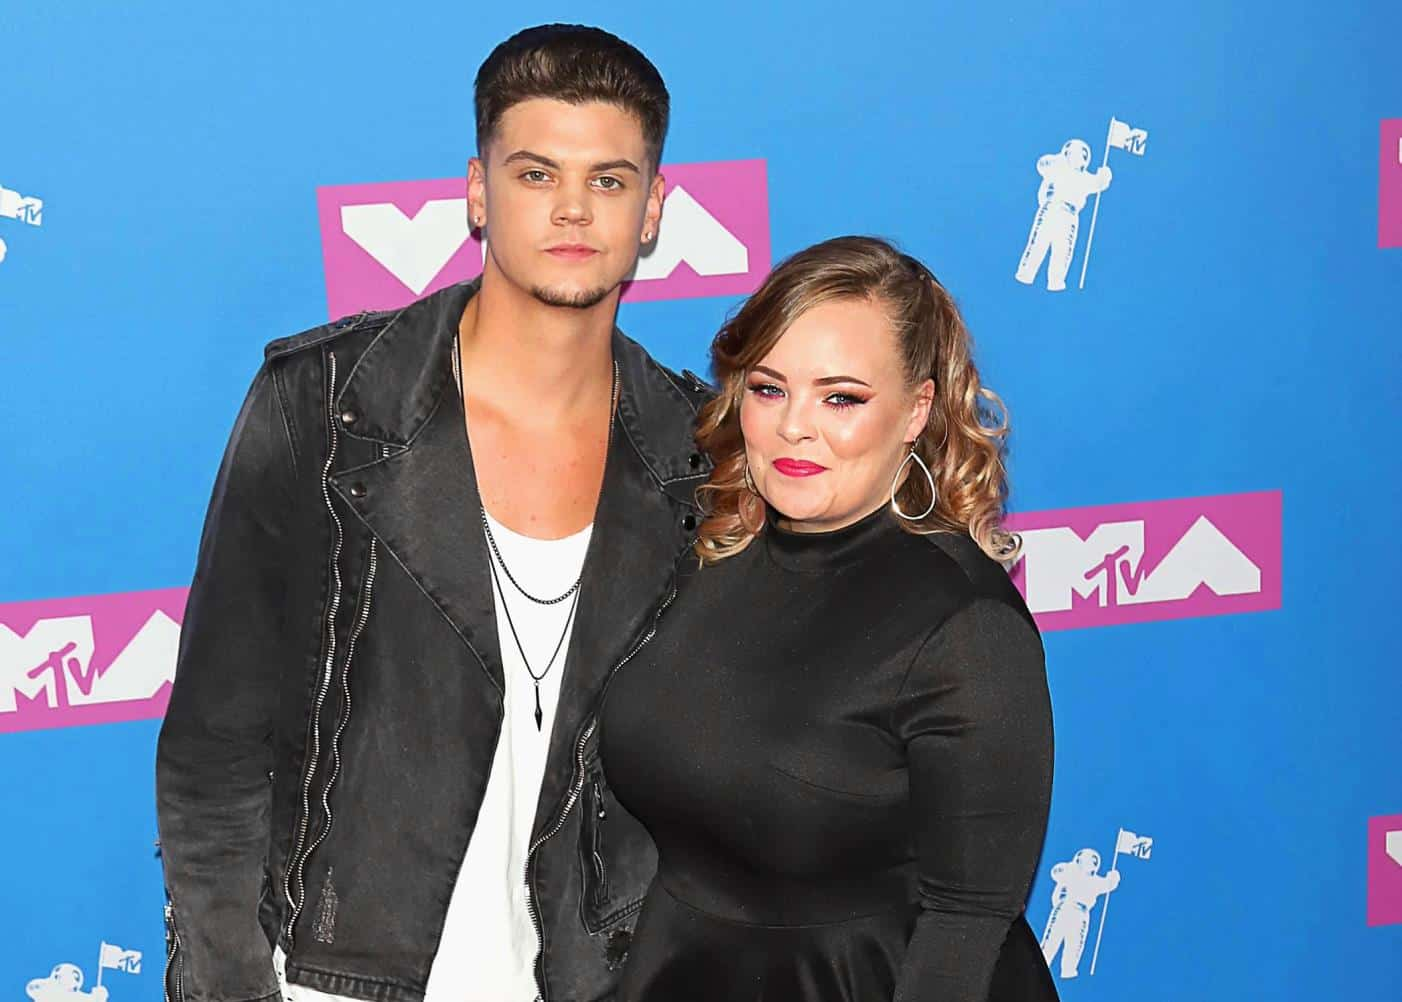 Teen Mom OG's Tyler Baltierra and Catelynn Lowell Pregnant News